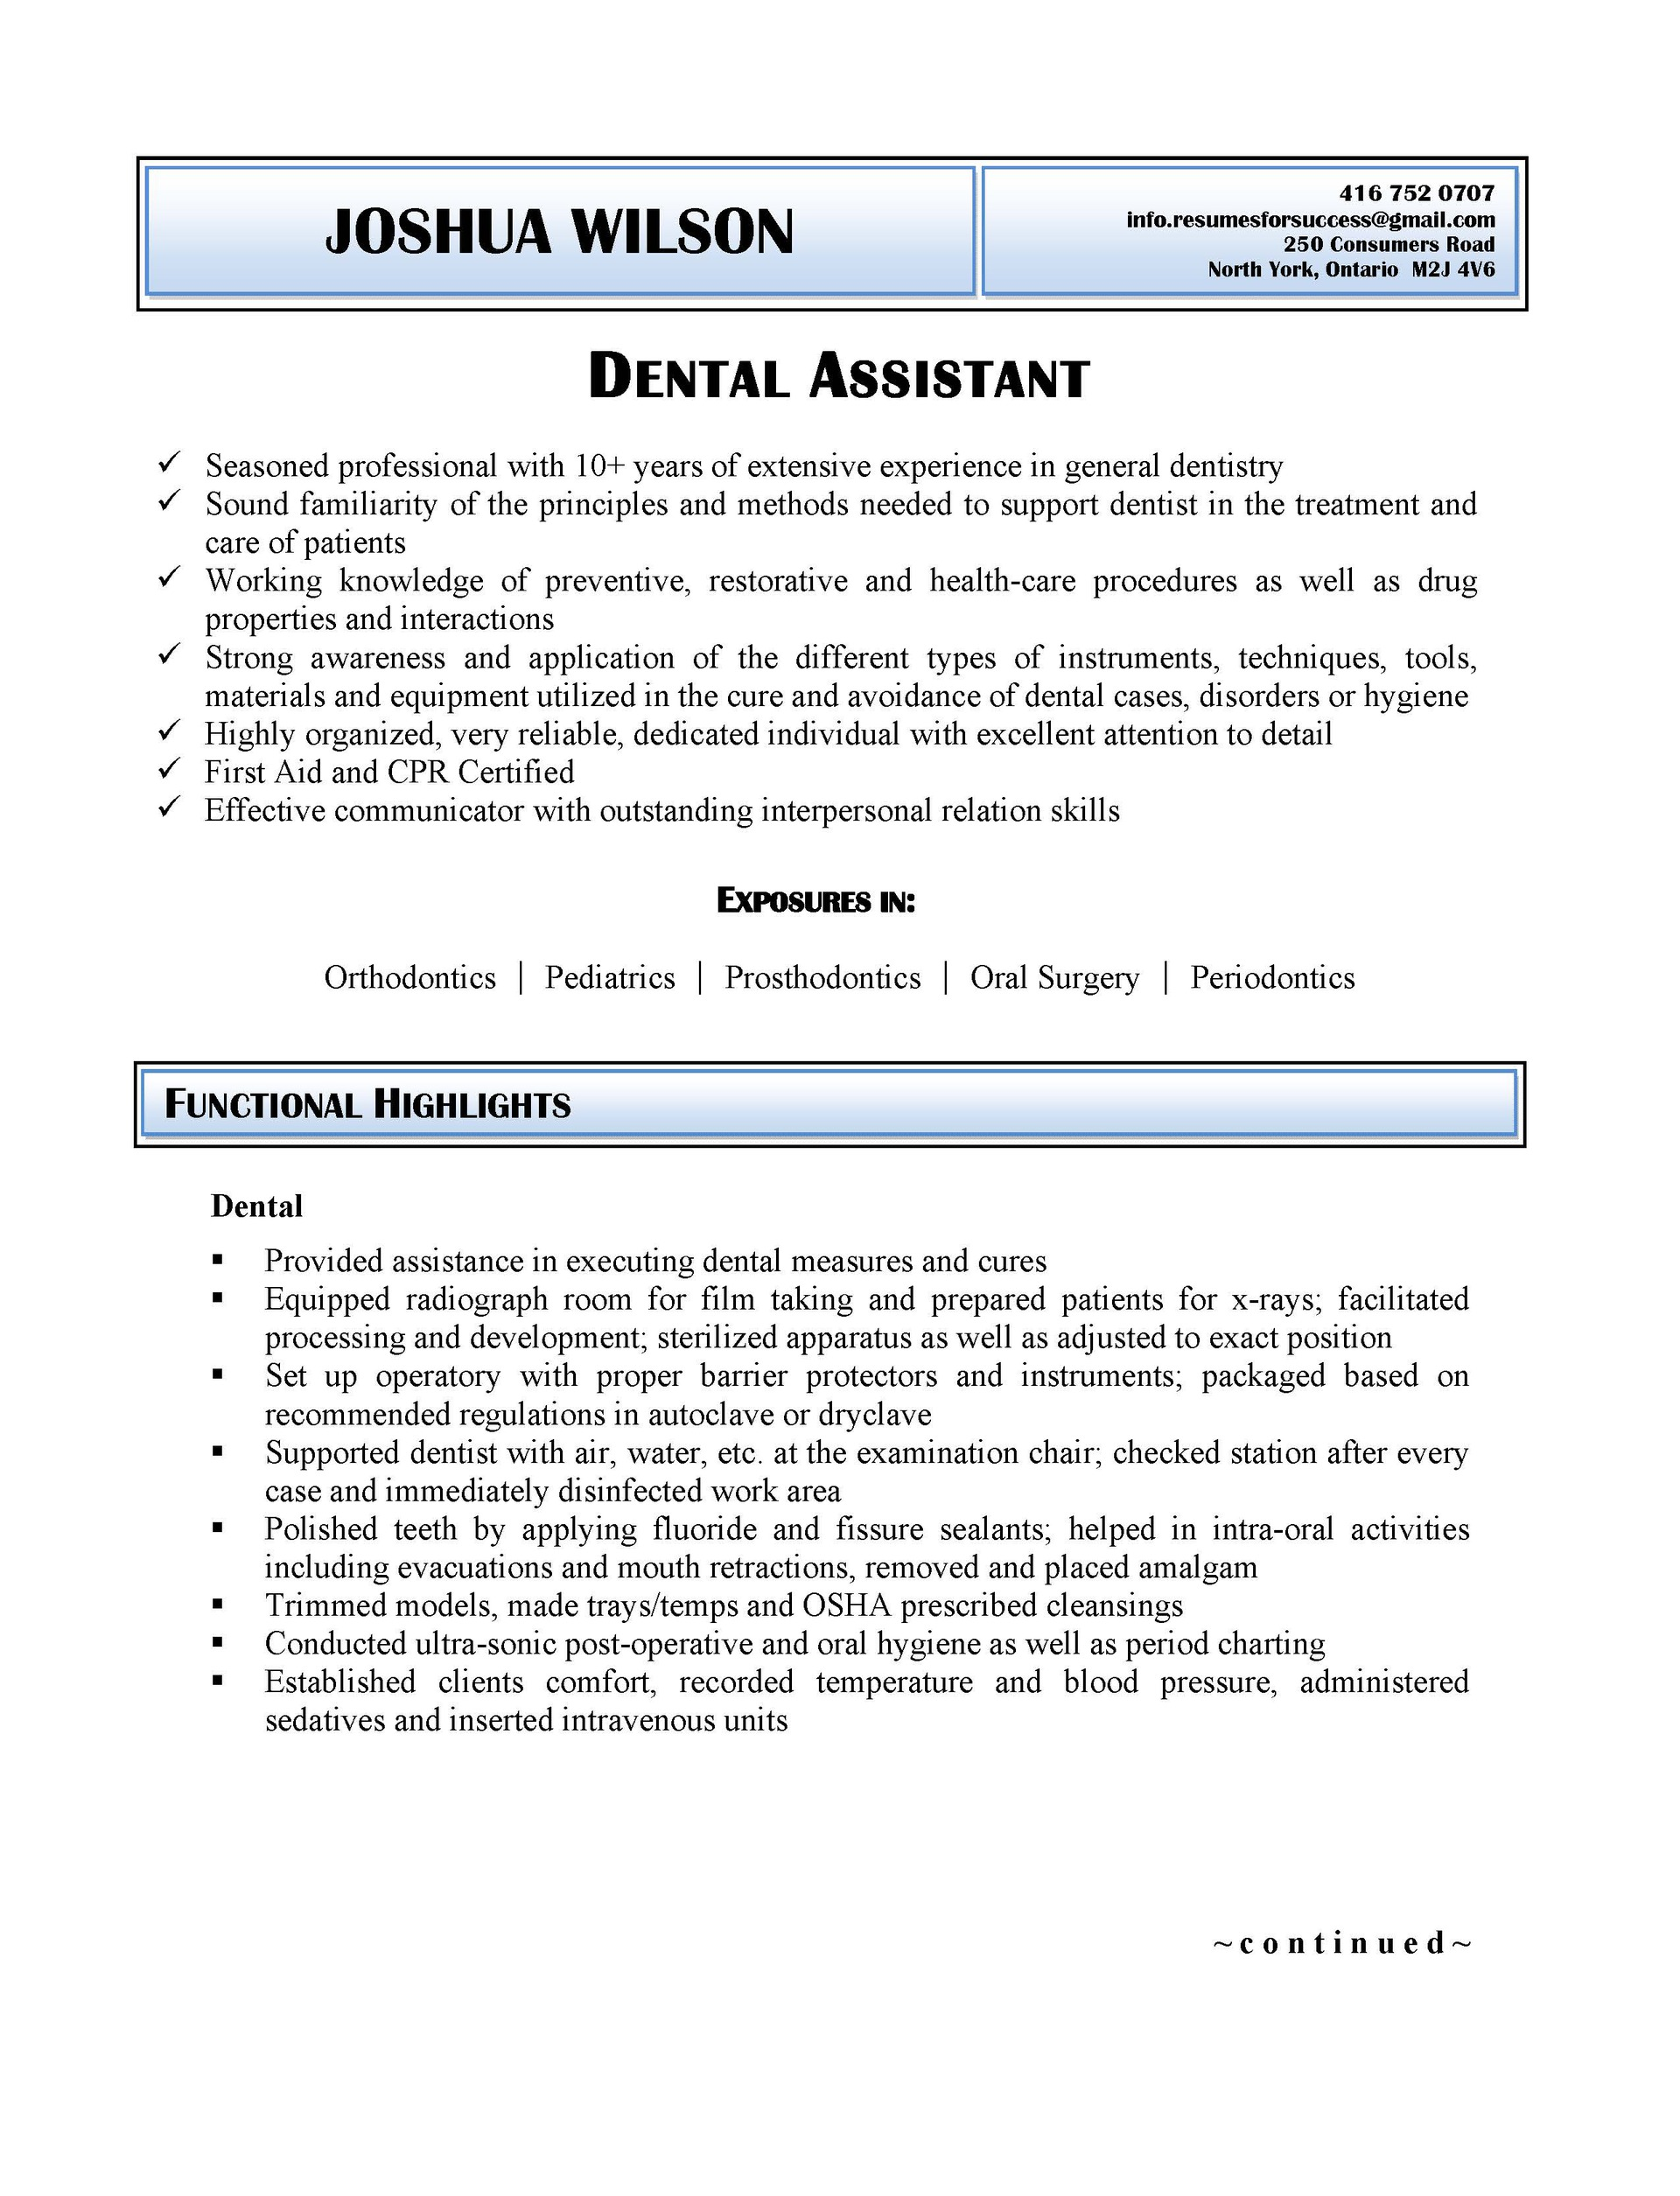 resumes for success resume formats view all